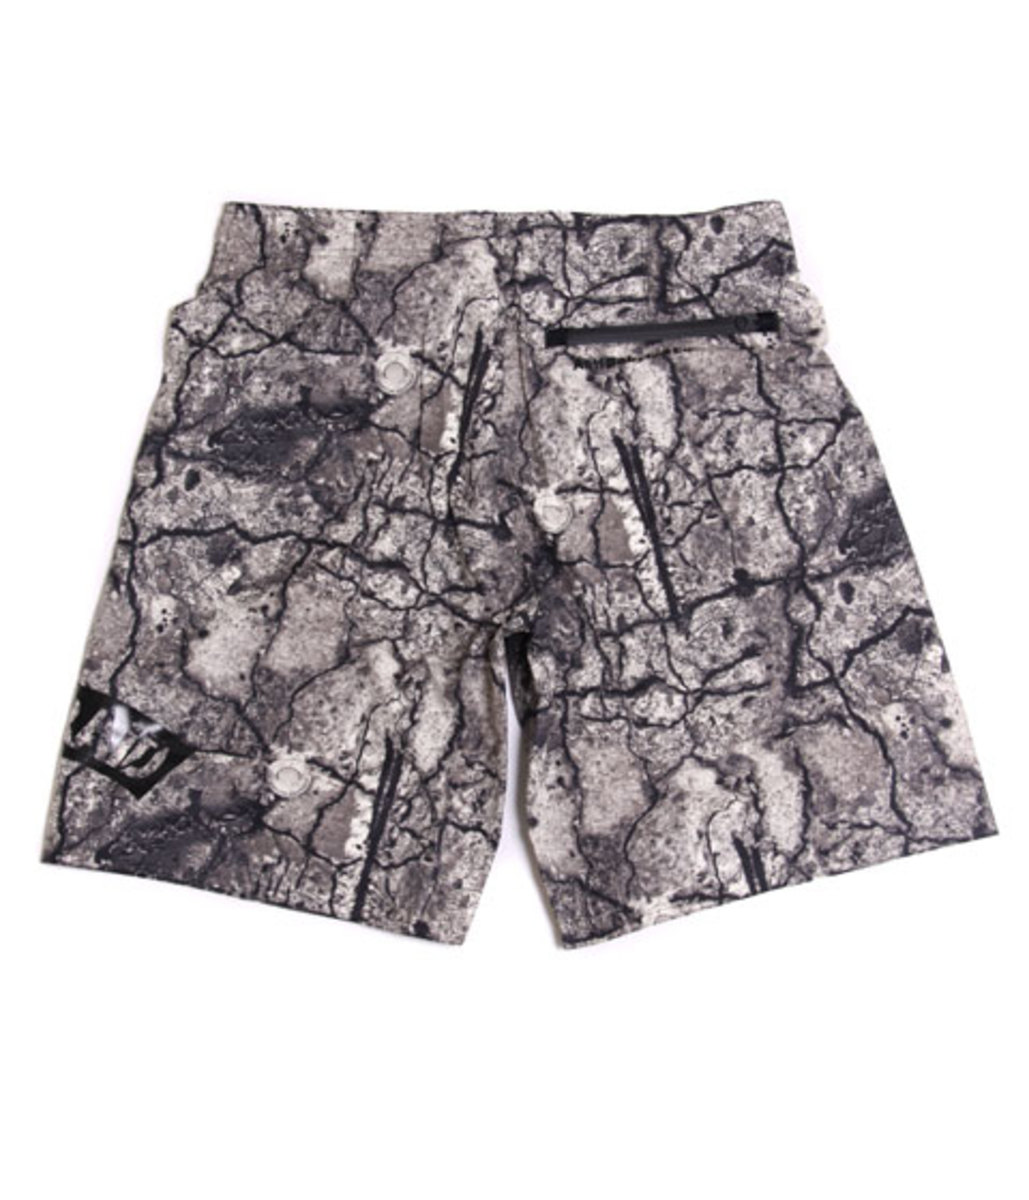 real-stoned-camo-swimming-shorts-back